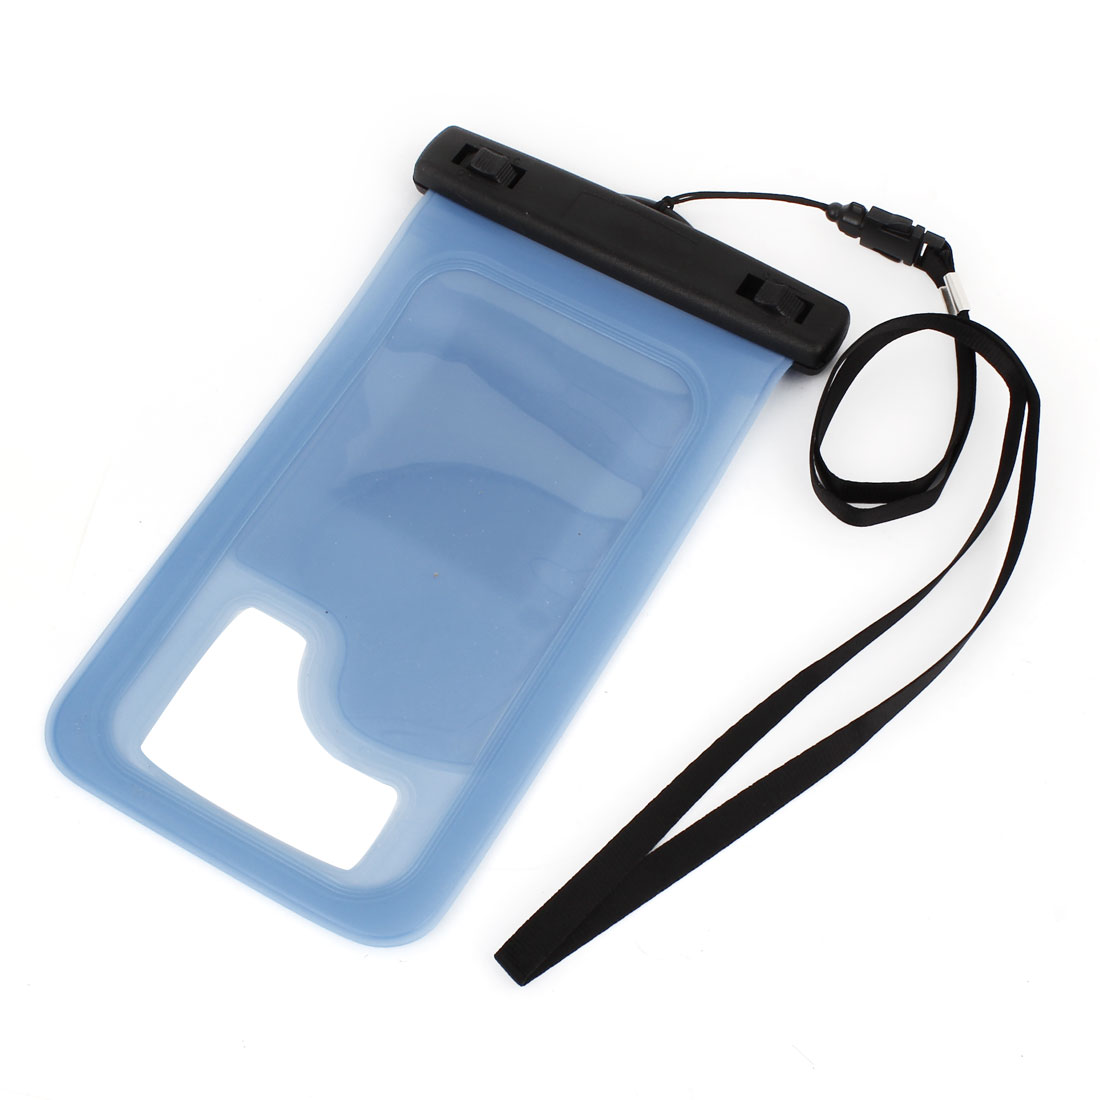 Clear Blue Underwater Waterproof Case Bag For Cell Phones w Nylon String